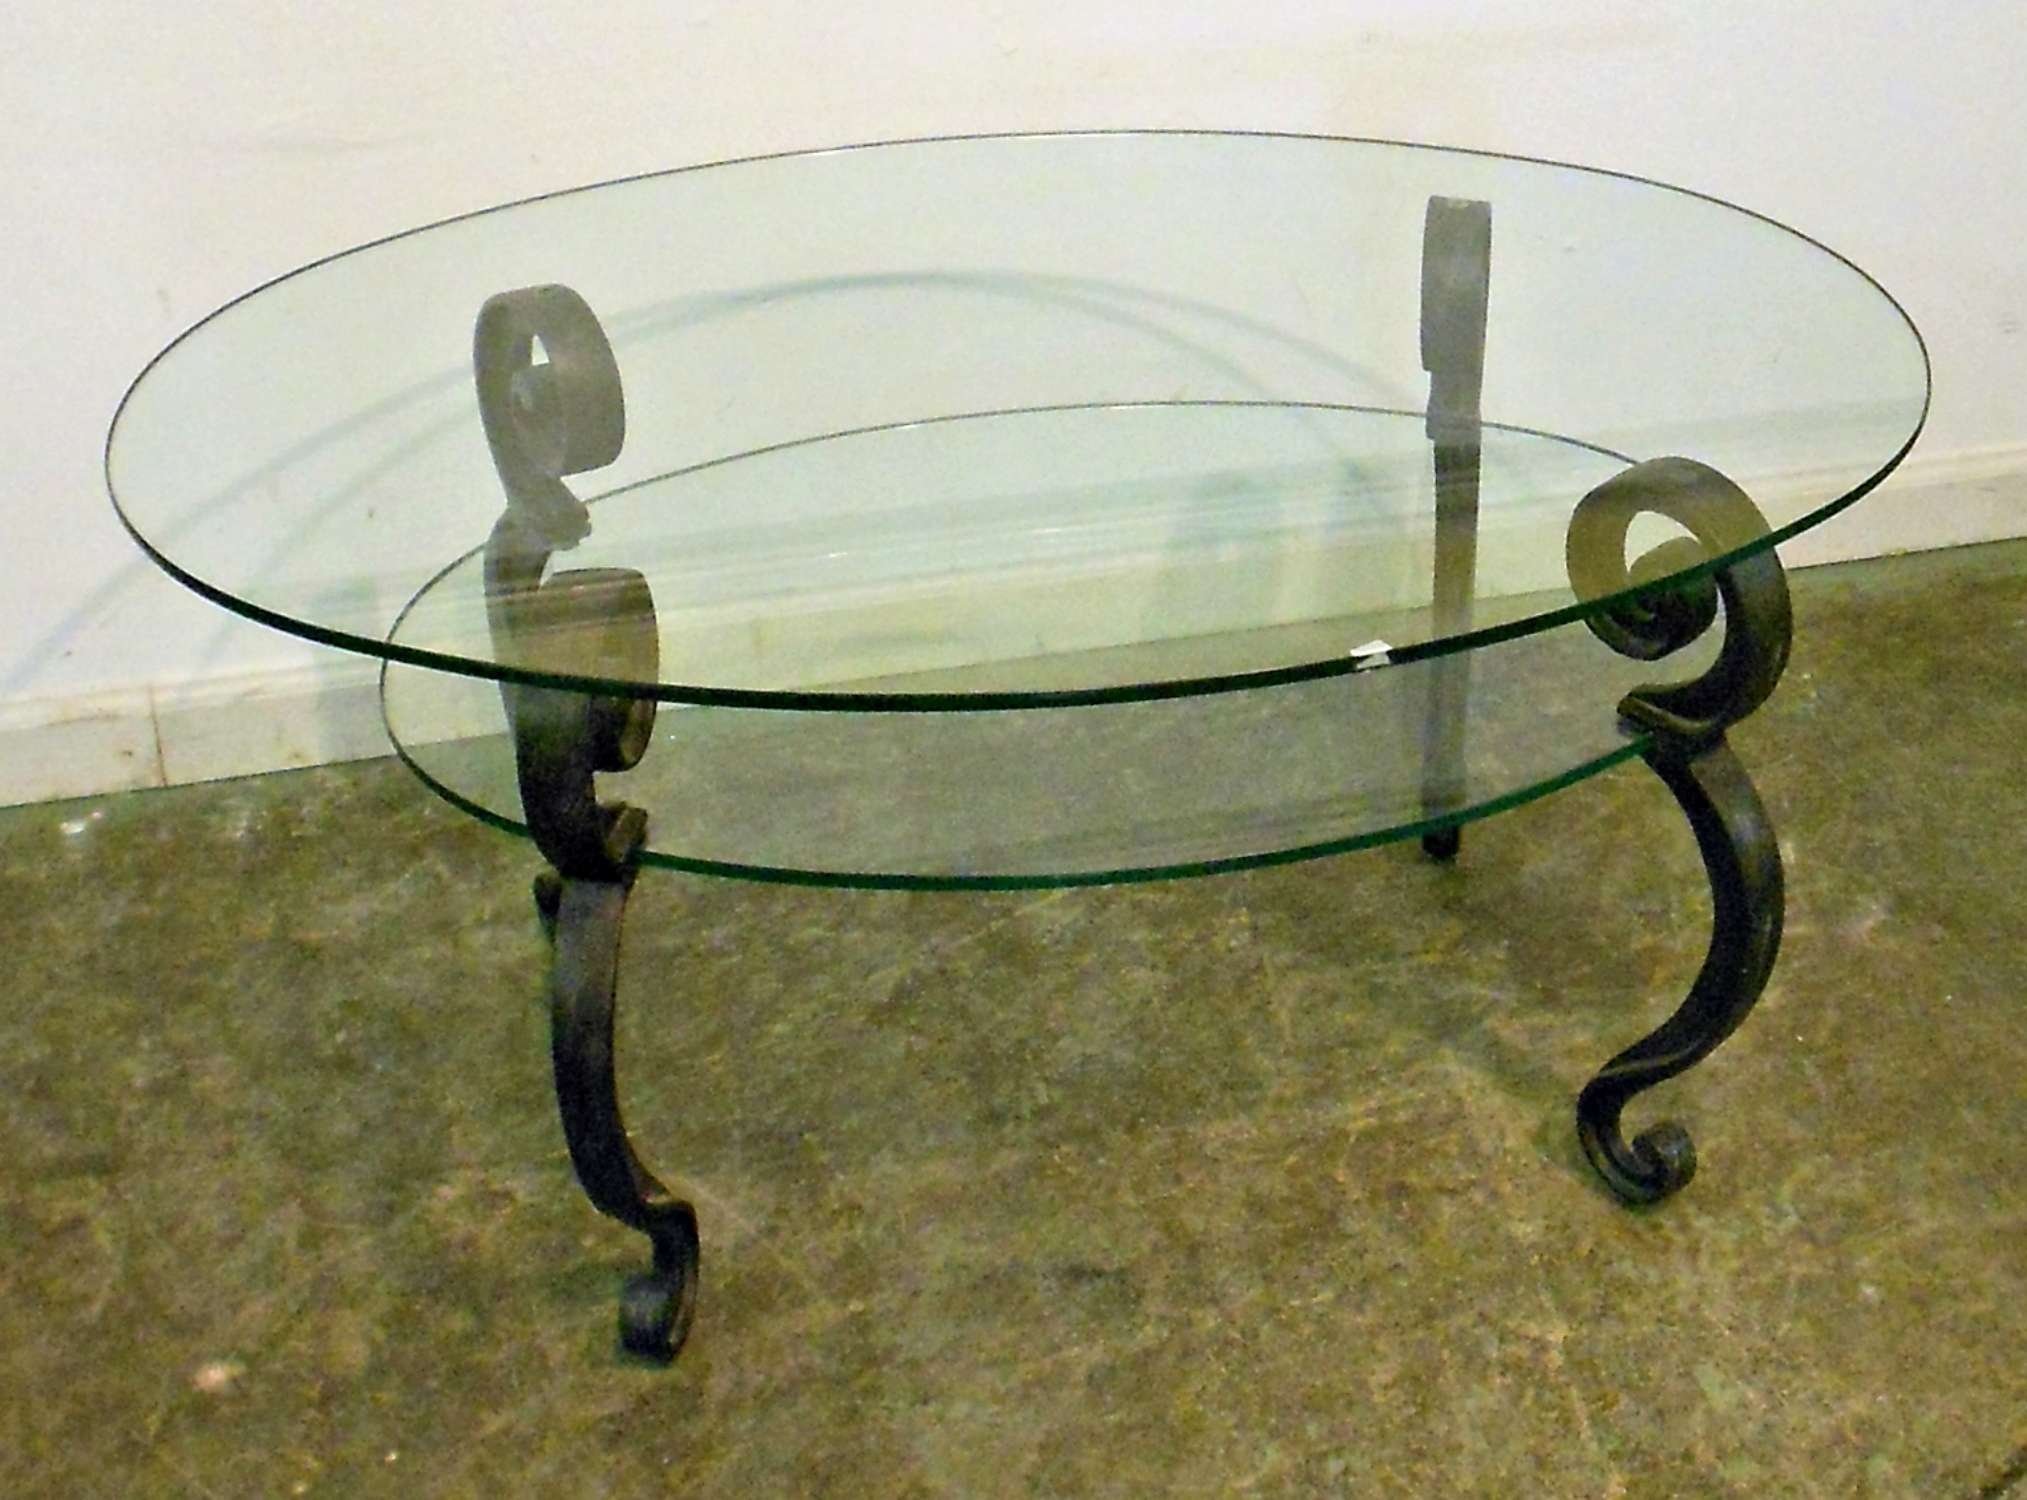 Well Liked Small Glass Coffee Tables Regarding Vintage Glass Top Coffee Table With Black Metal Legs And Shelves (View 19 of 20)